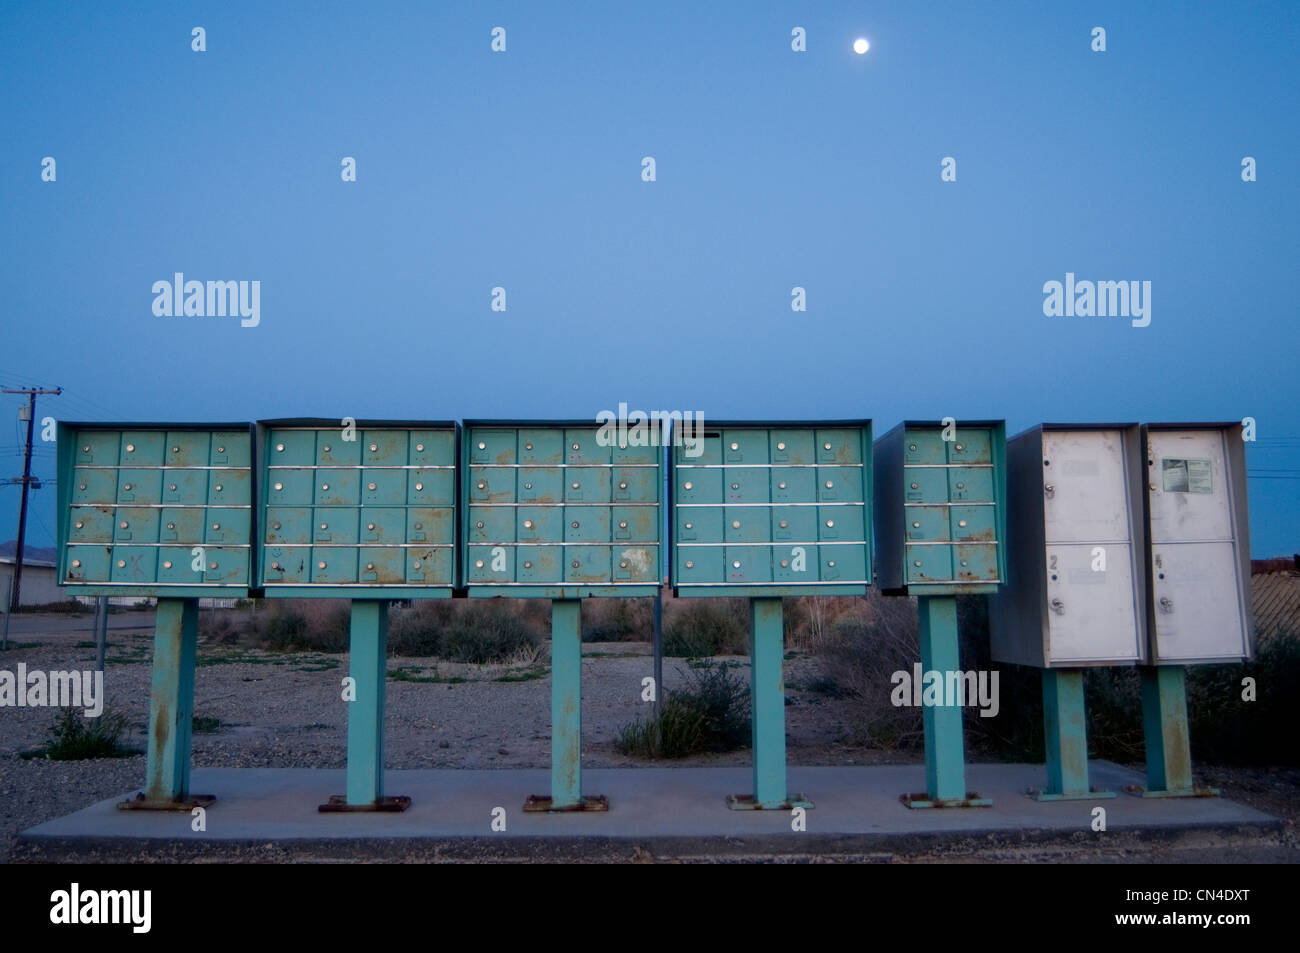 Row of mailboxes at night - Stock Image